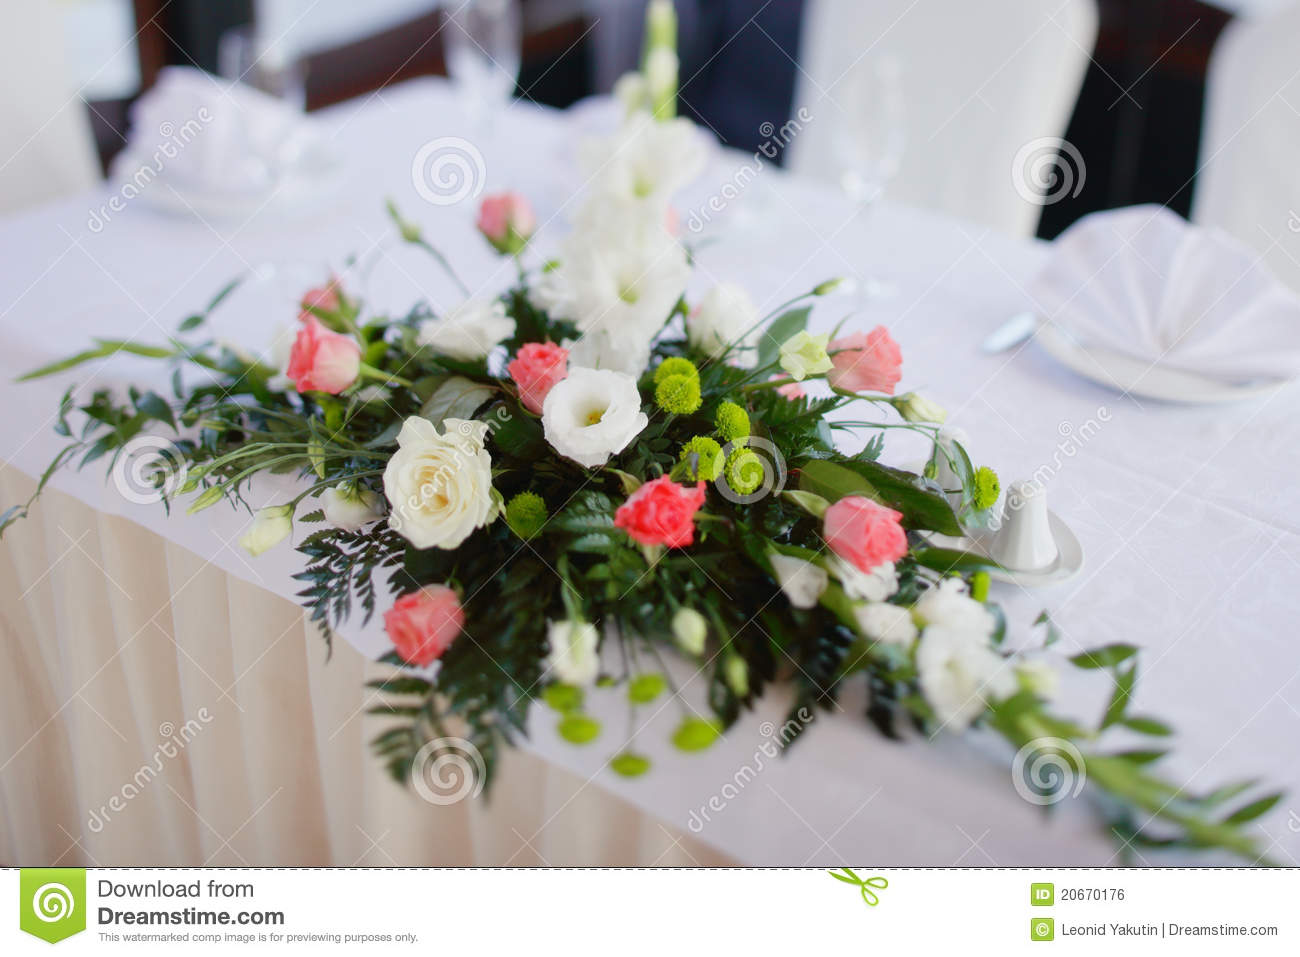 Aliexpress Decoration Mariage Wedding Bouquet On A Table Stock Photo Image Of